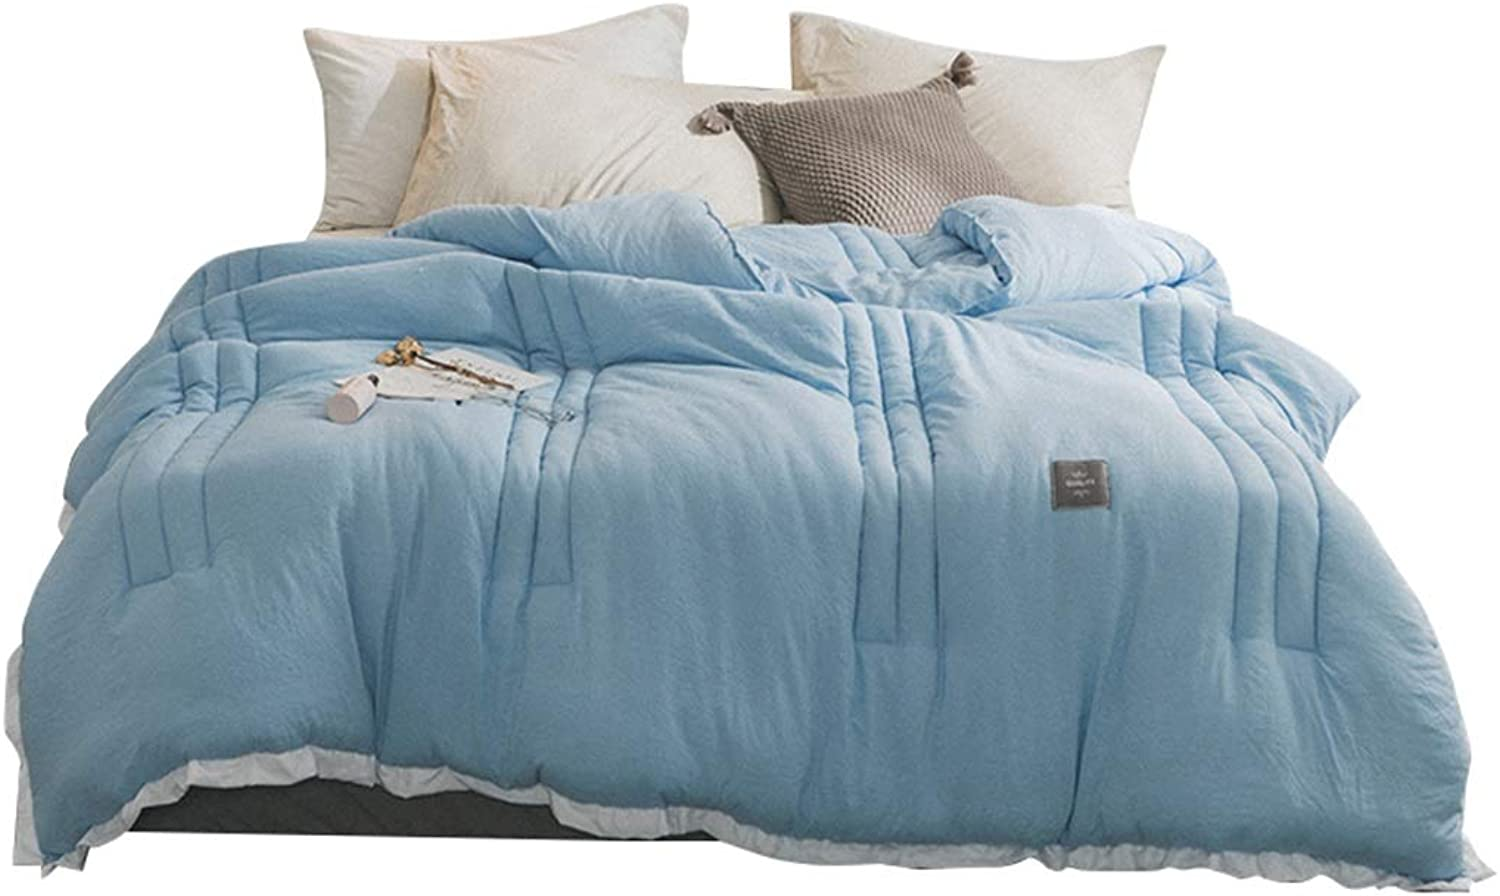 Warm Quilt Fashion Washed Cotton Quilt Polyester Fiber Keep Warm Cozy Soft No Smell Increasing The Thickness Single Double Bed bluee White Edge Winter Comforters Antiallergic Quilt